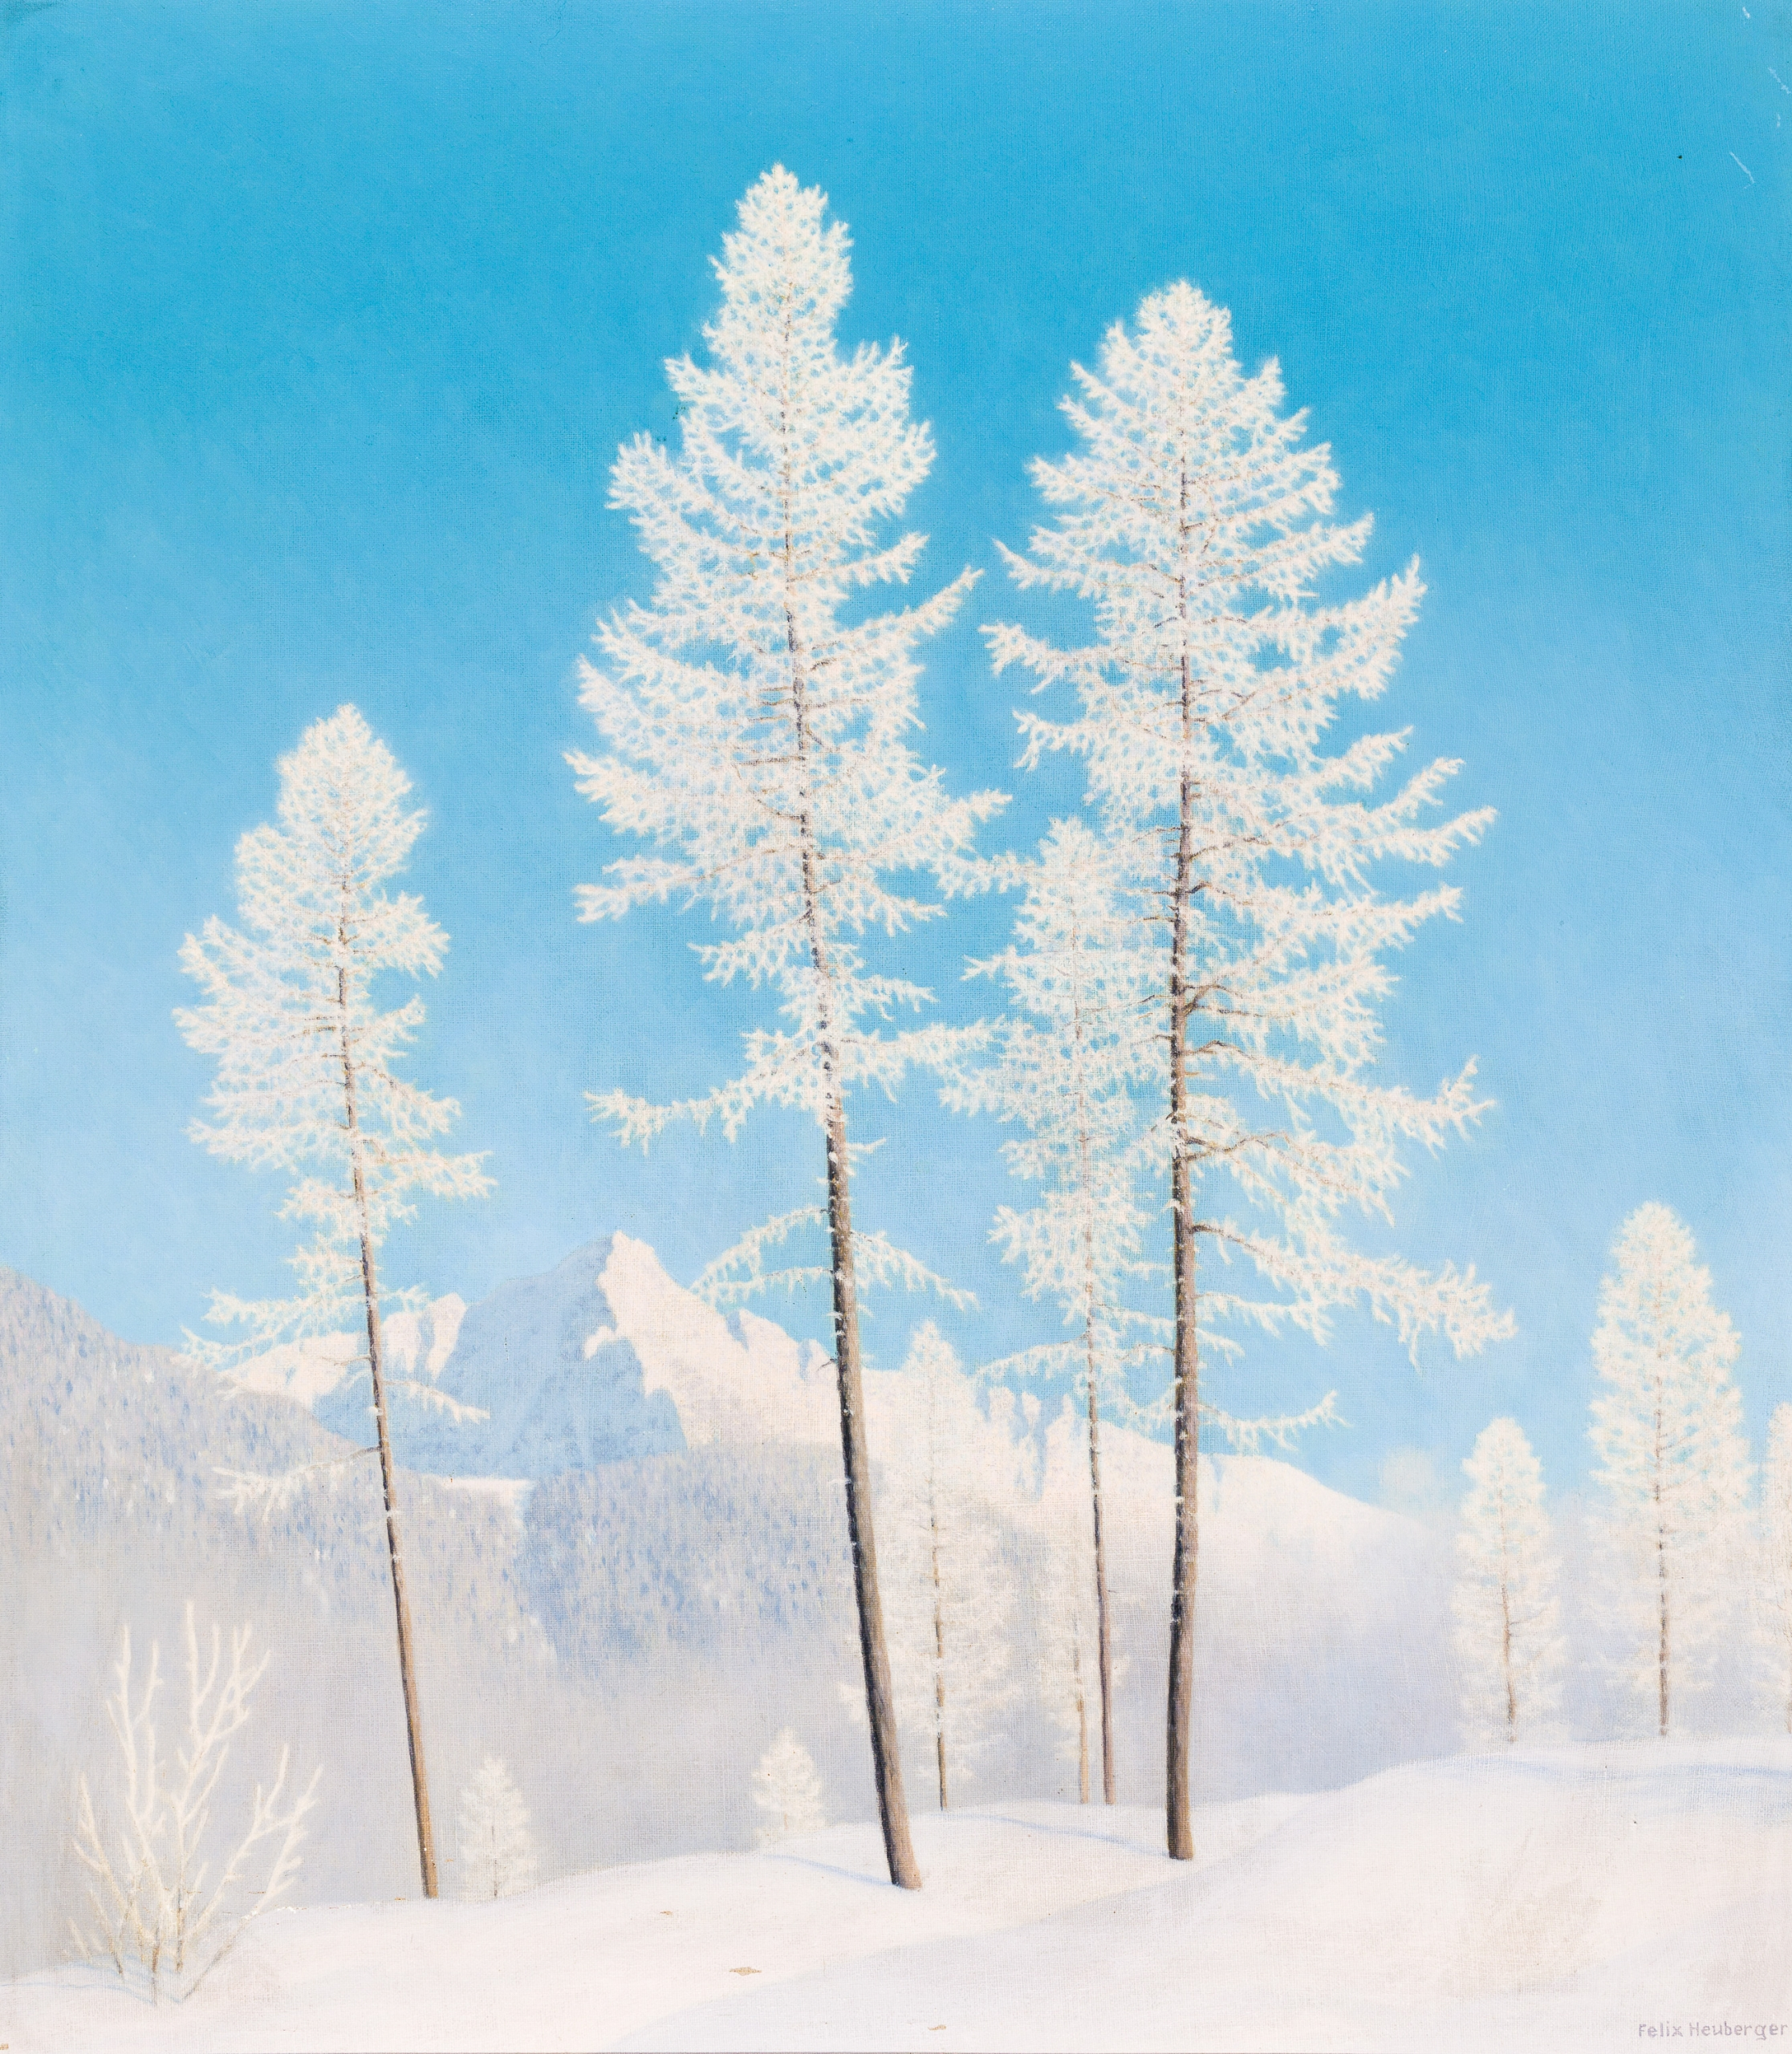 Felix Heuberger, Winterlandschaft